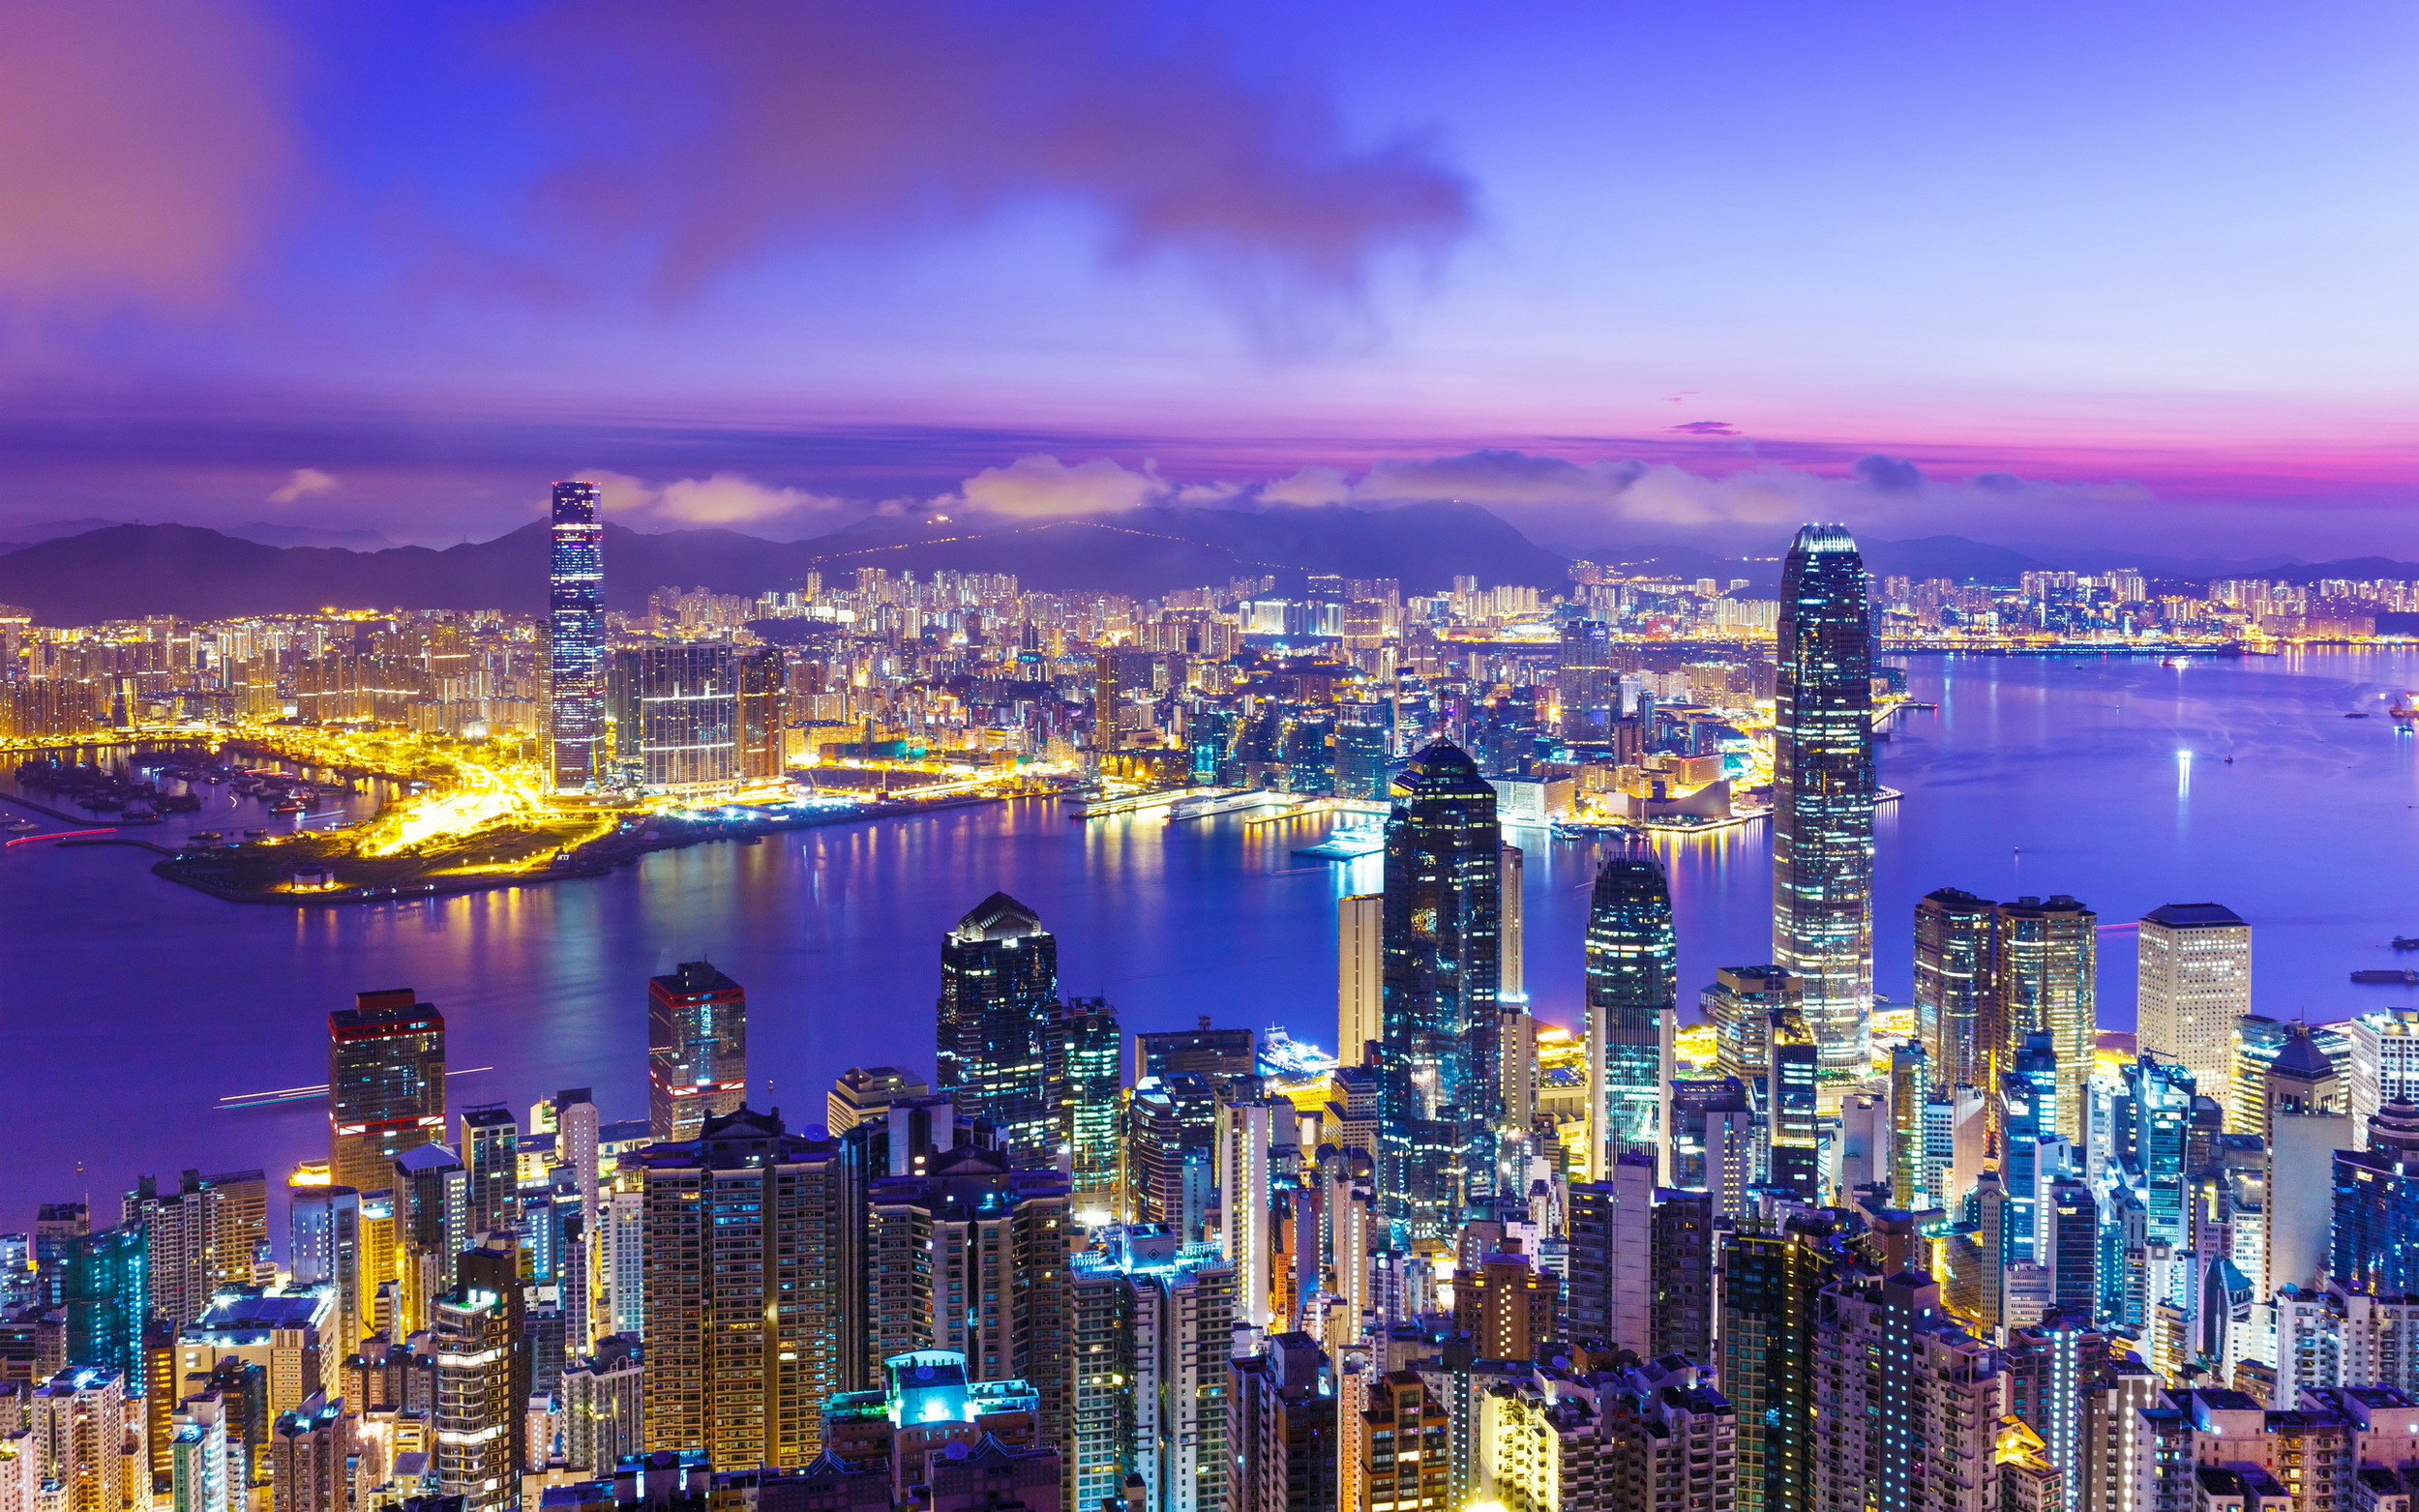 Hong Kong carriers scoop up 3.5 GHz spectrum at 5G auction